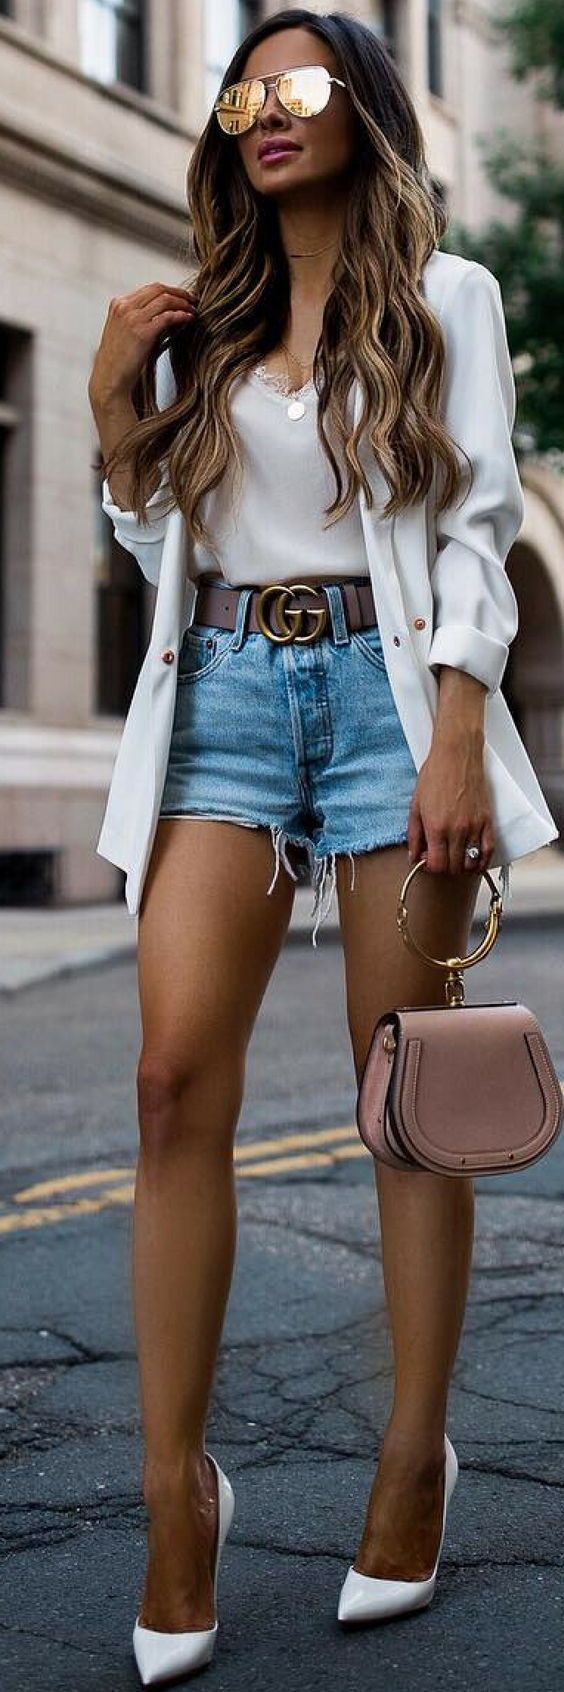 22 Casual Summer Outfits That Make You Look Fabulous  #casual #fabulous #outfits #summer #summeroutfits2019